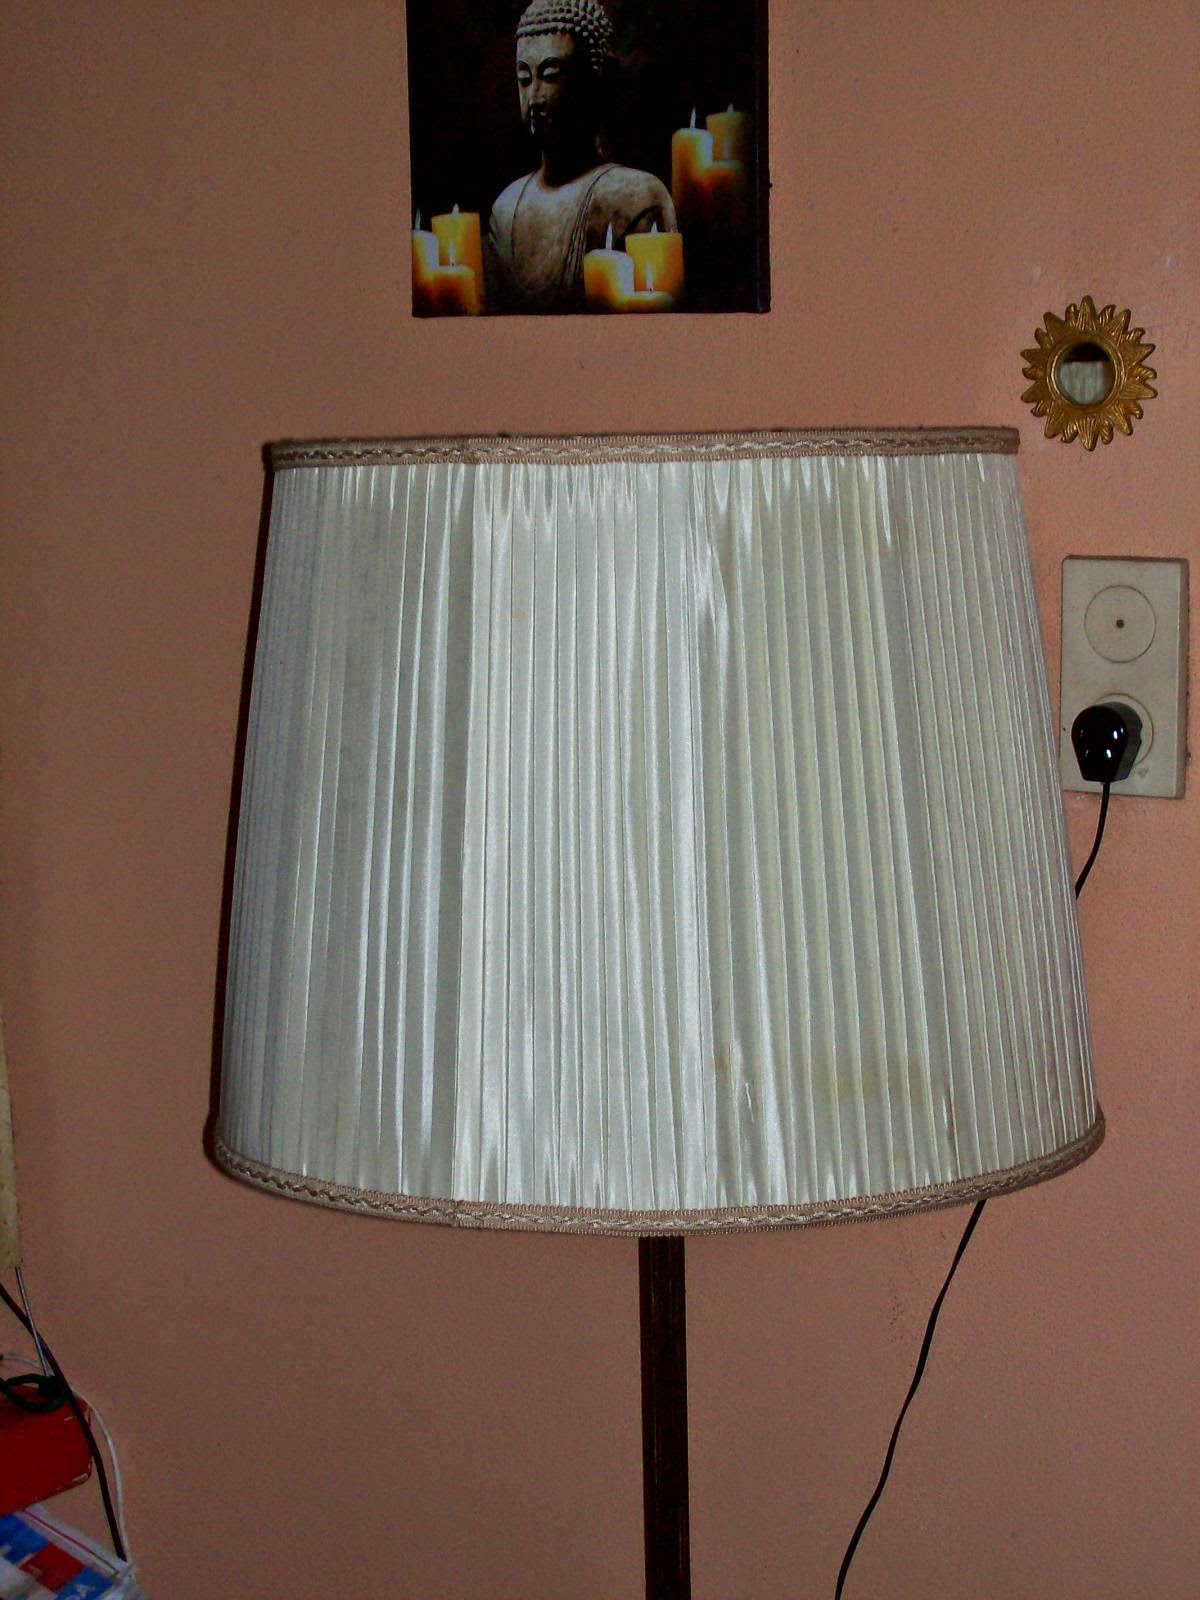 Picture of my lamp, with a creamy white lampshade